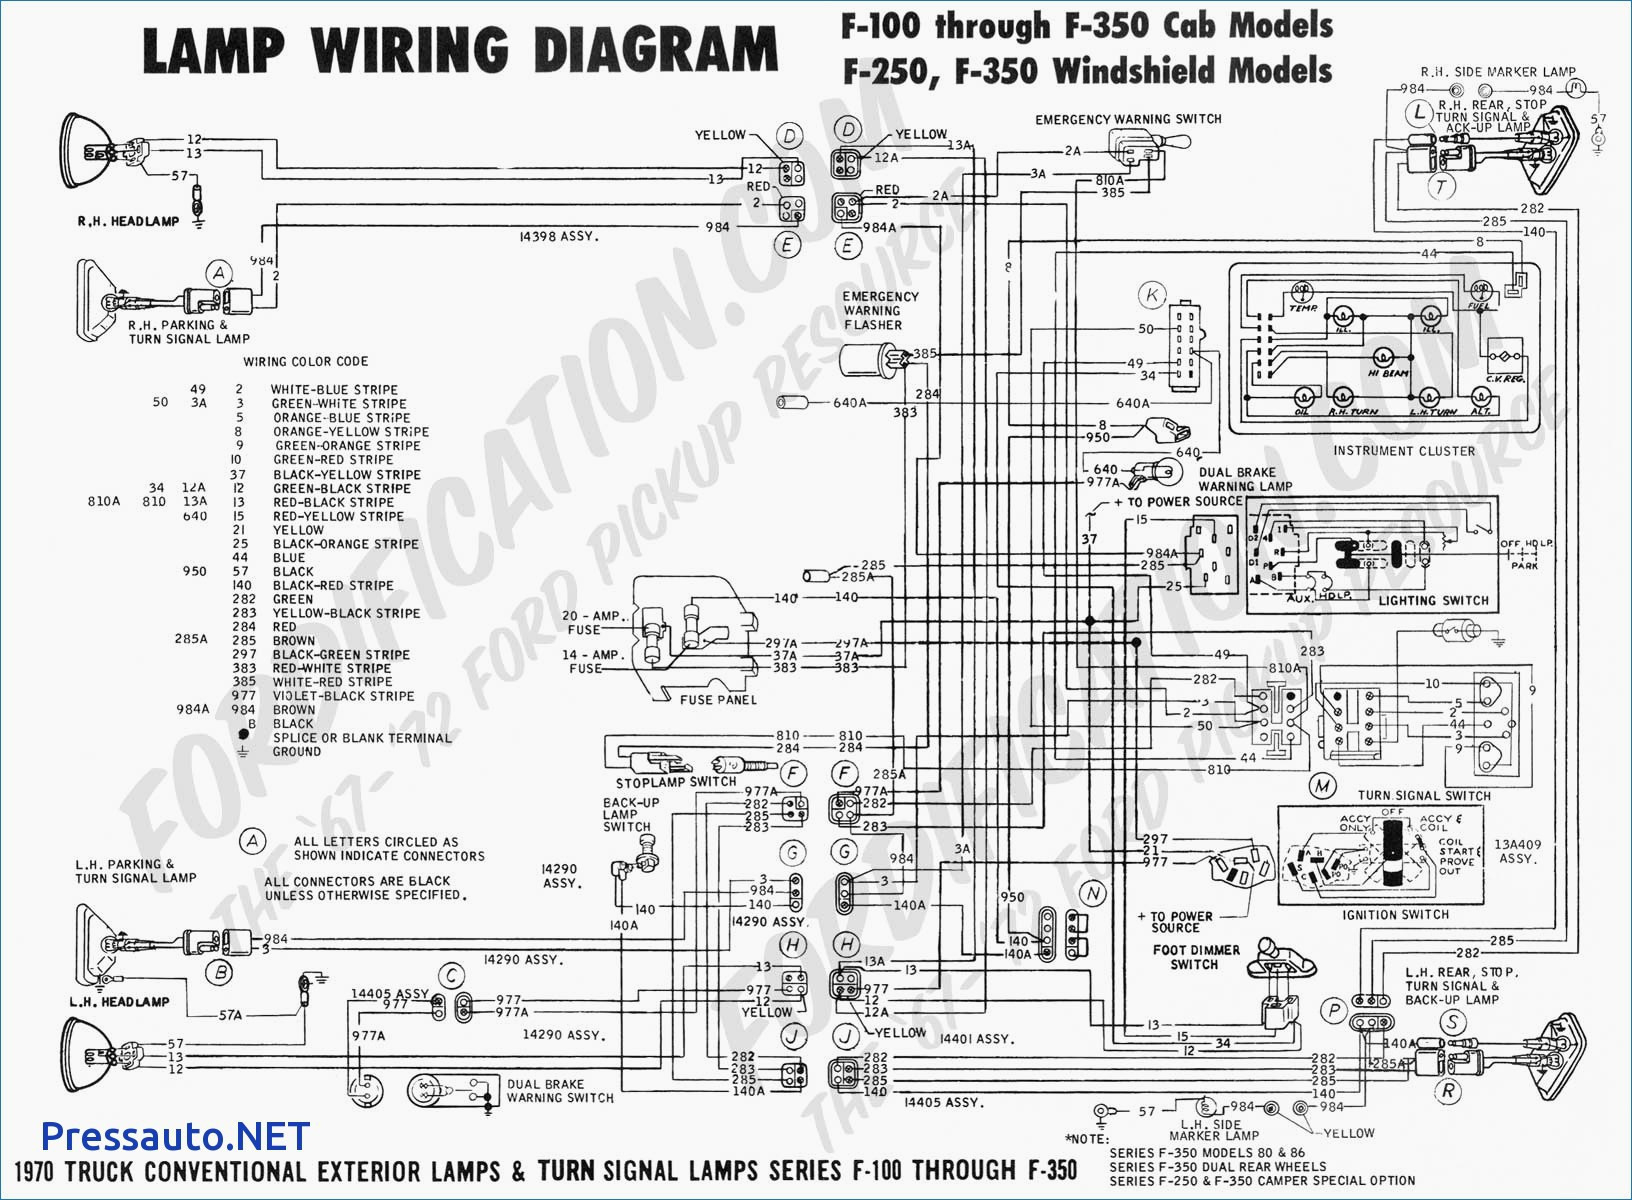 flow meter wiring diagram Collection-E46 Alternator Wiring Diagram Fresh Mass Air Flow Sensor Wiring Diagram Best E46 Wiring Diagram 13-e